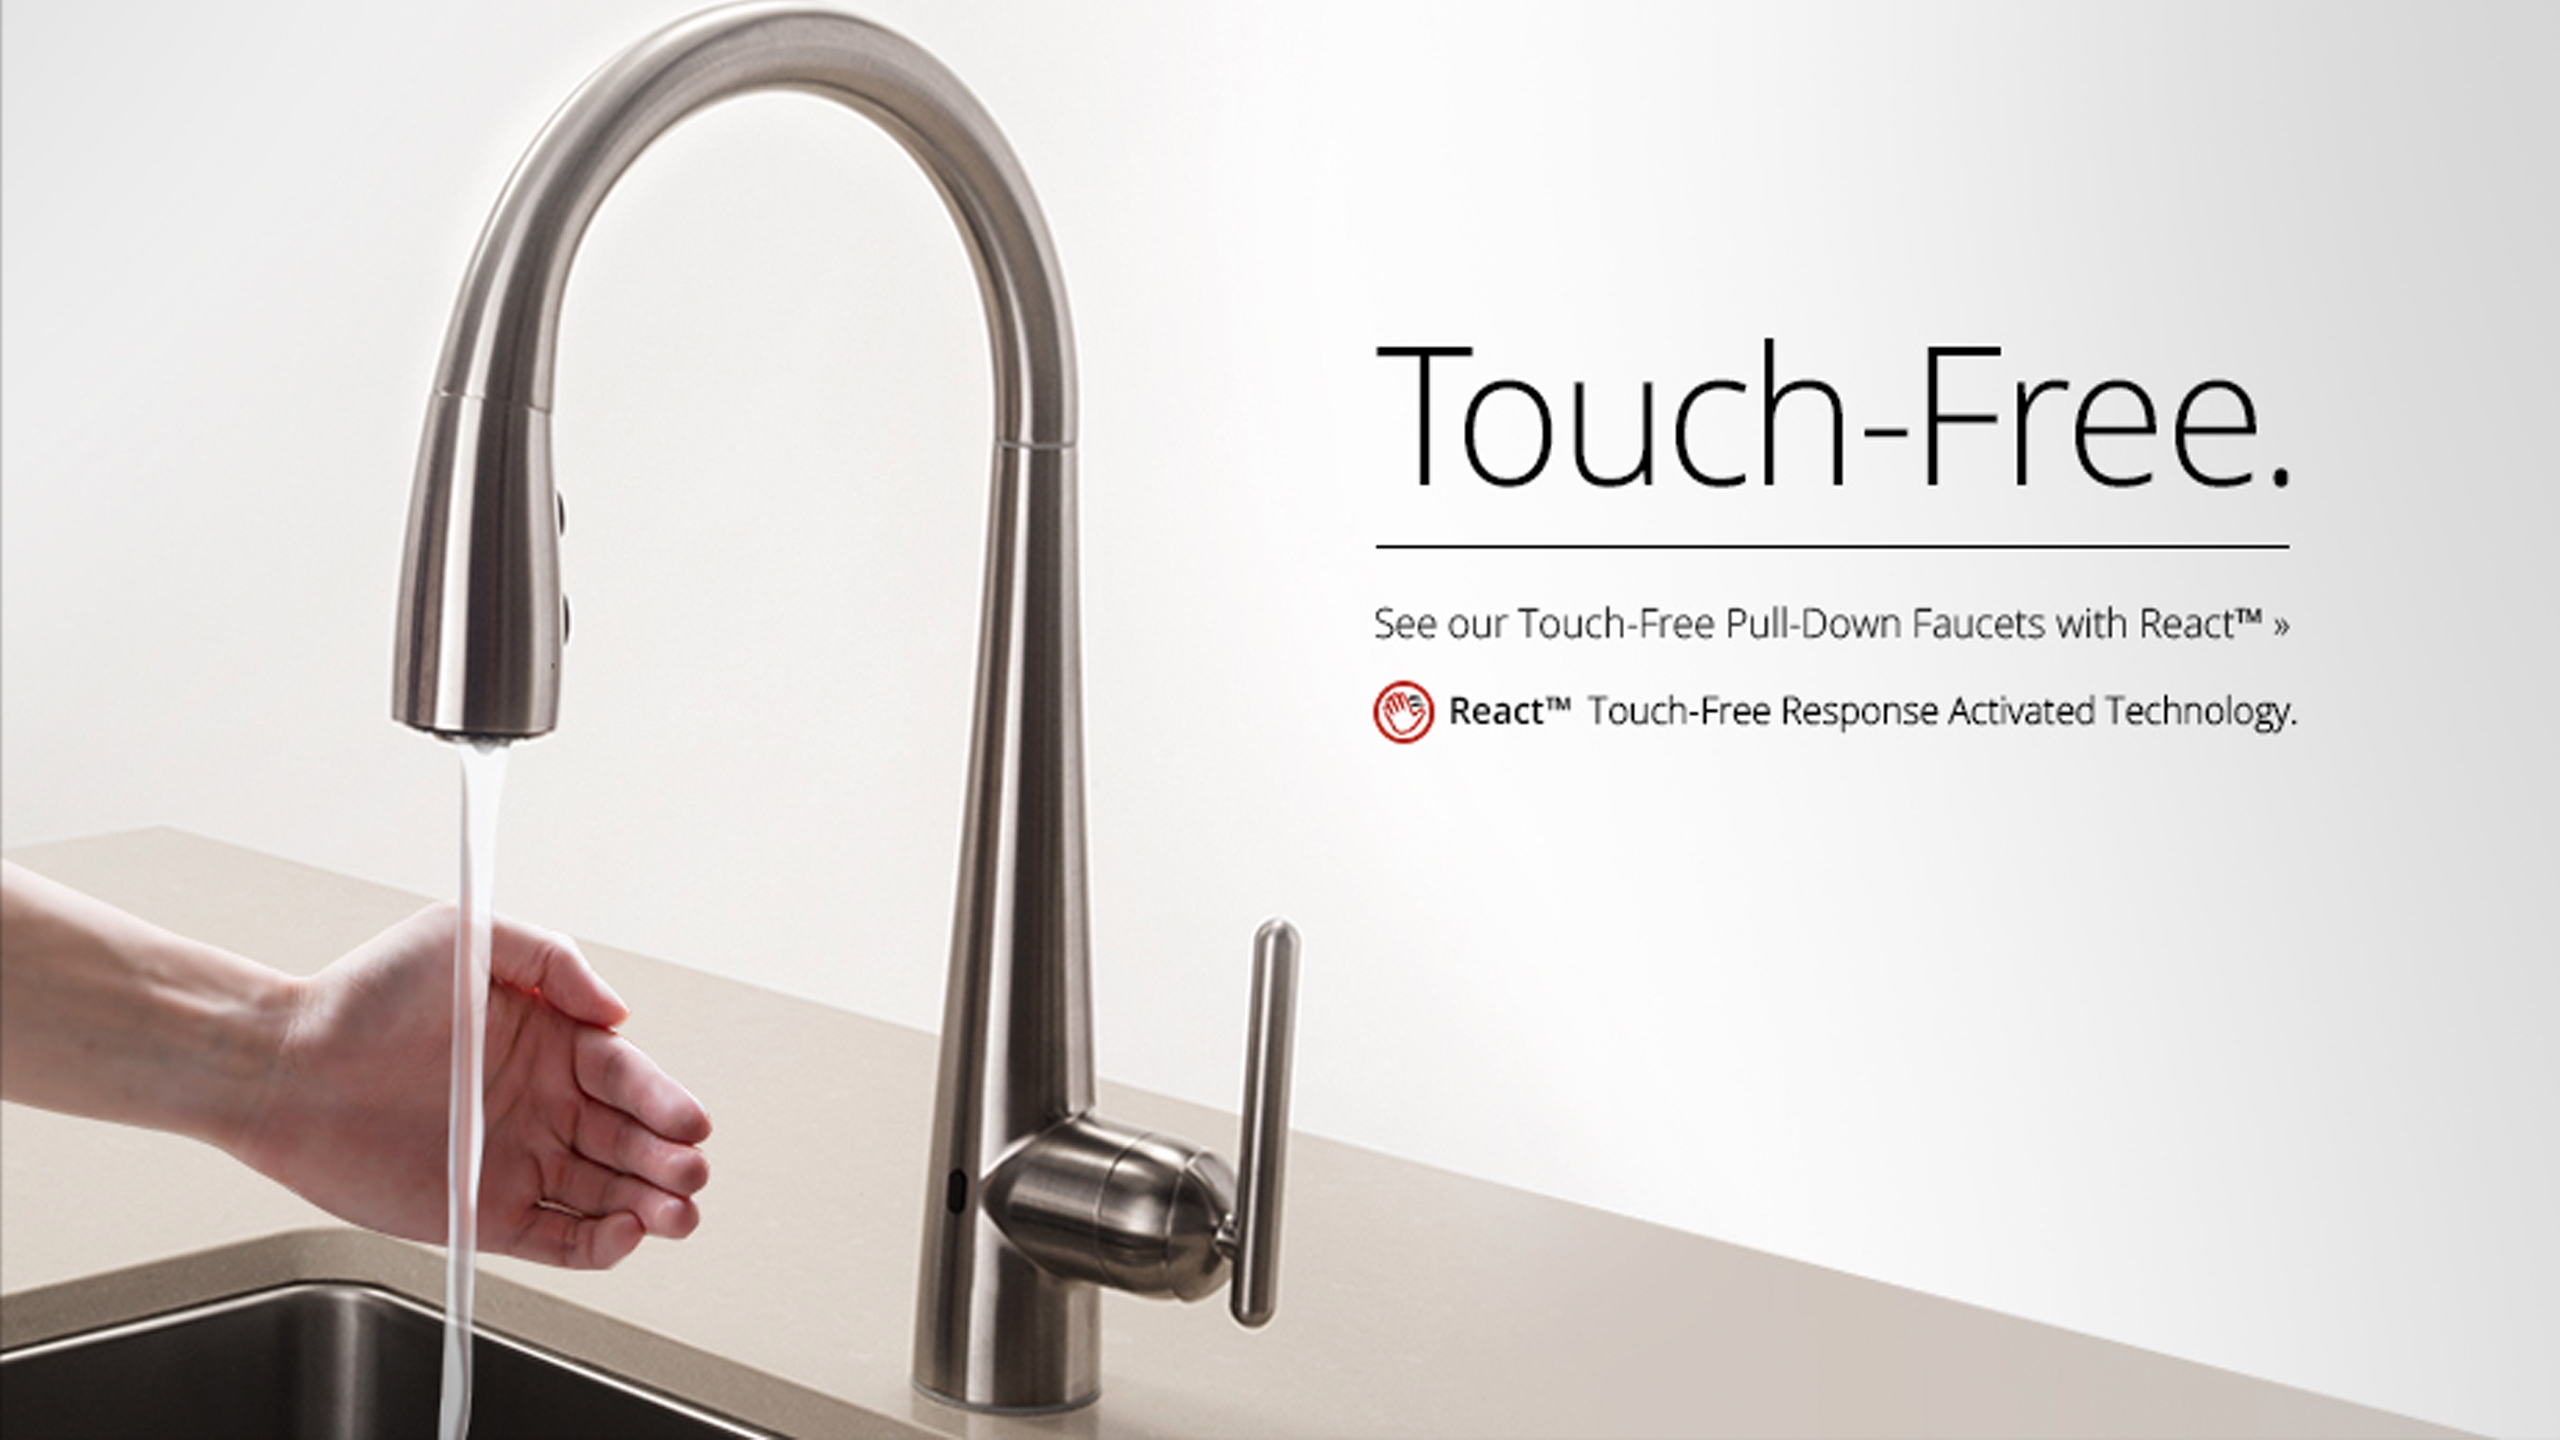 Ideas, best touch activated kitchen faucet best touch activated kitchen faucet 28 touch free kitchen faucets stainless steel lita touch 2560 x 1440  .